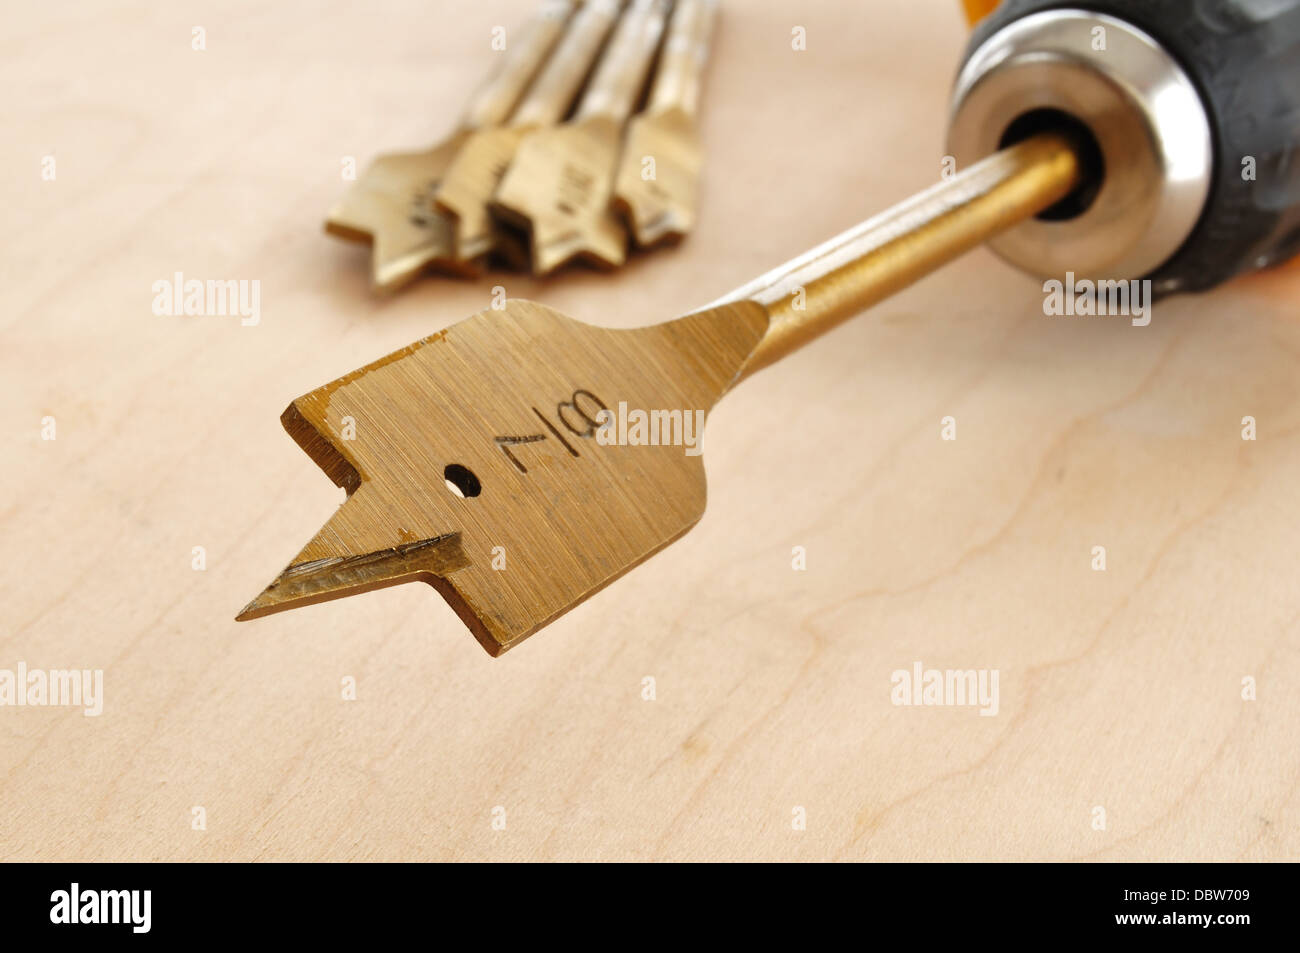 Wood drill bit - Stock Image